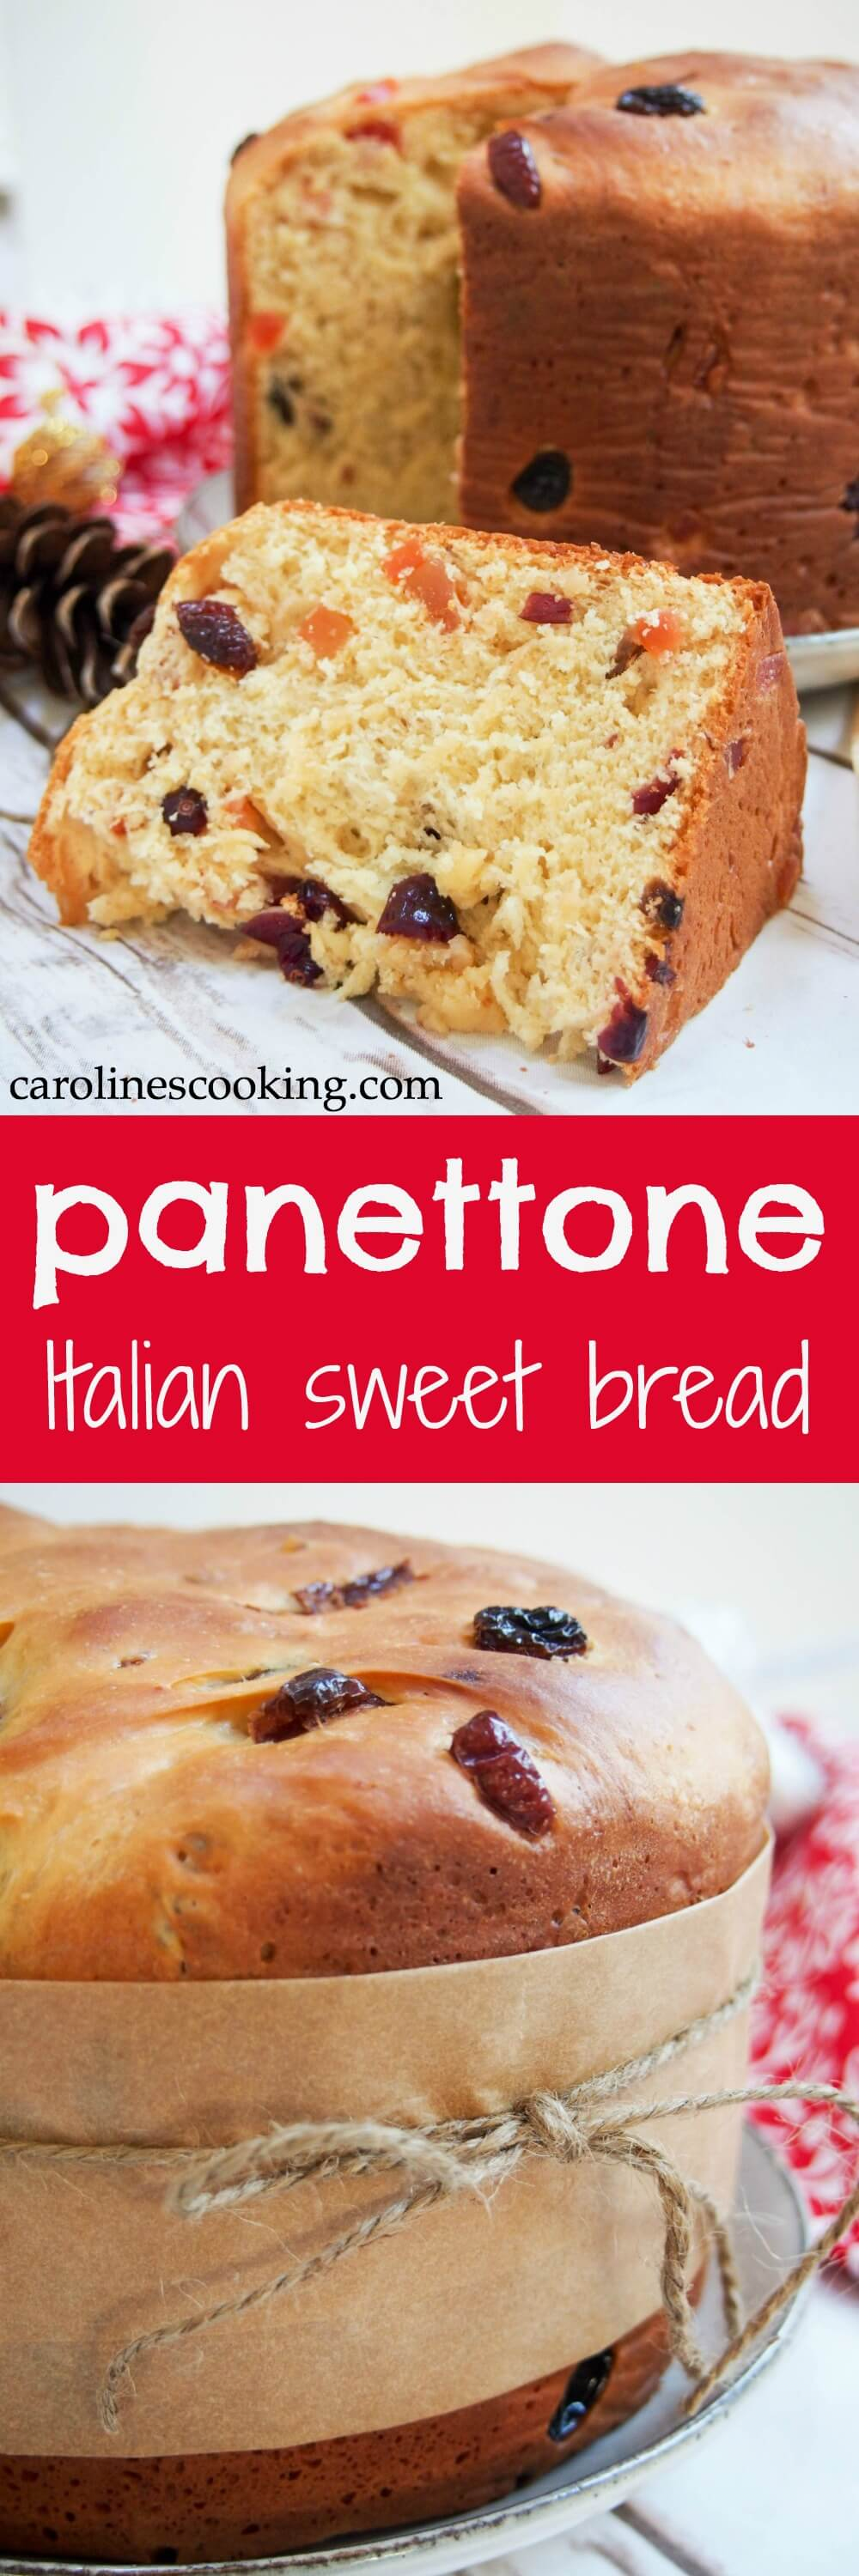 Panettone is a slightly sweet Italian bread, studded with fruit, that's common over the Holiday season both for gifting and serving guests. But really, it's so delicious you'll want to find any excuse. #Christmas #bread #Italianfood